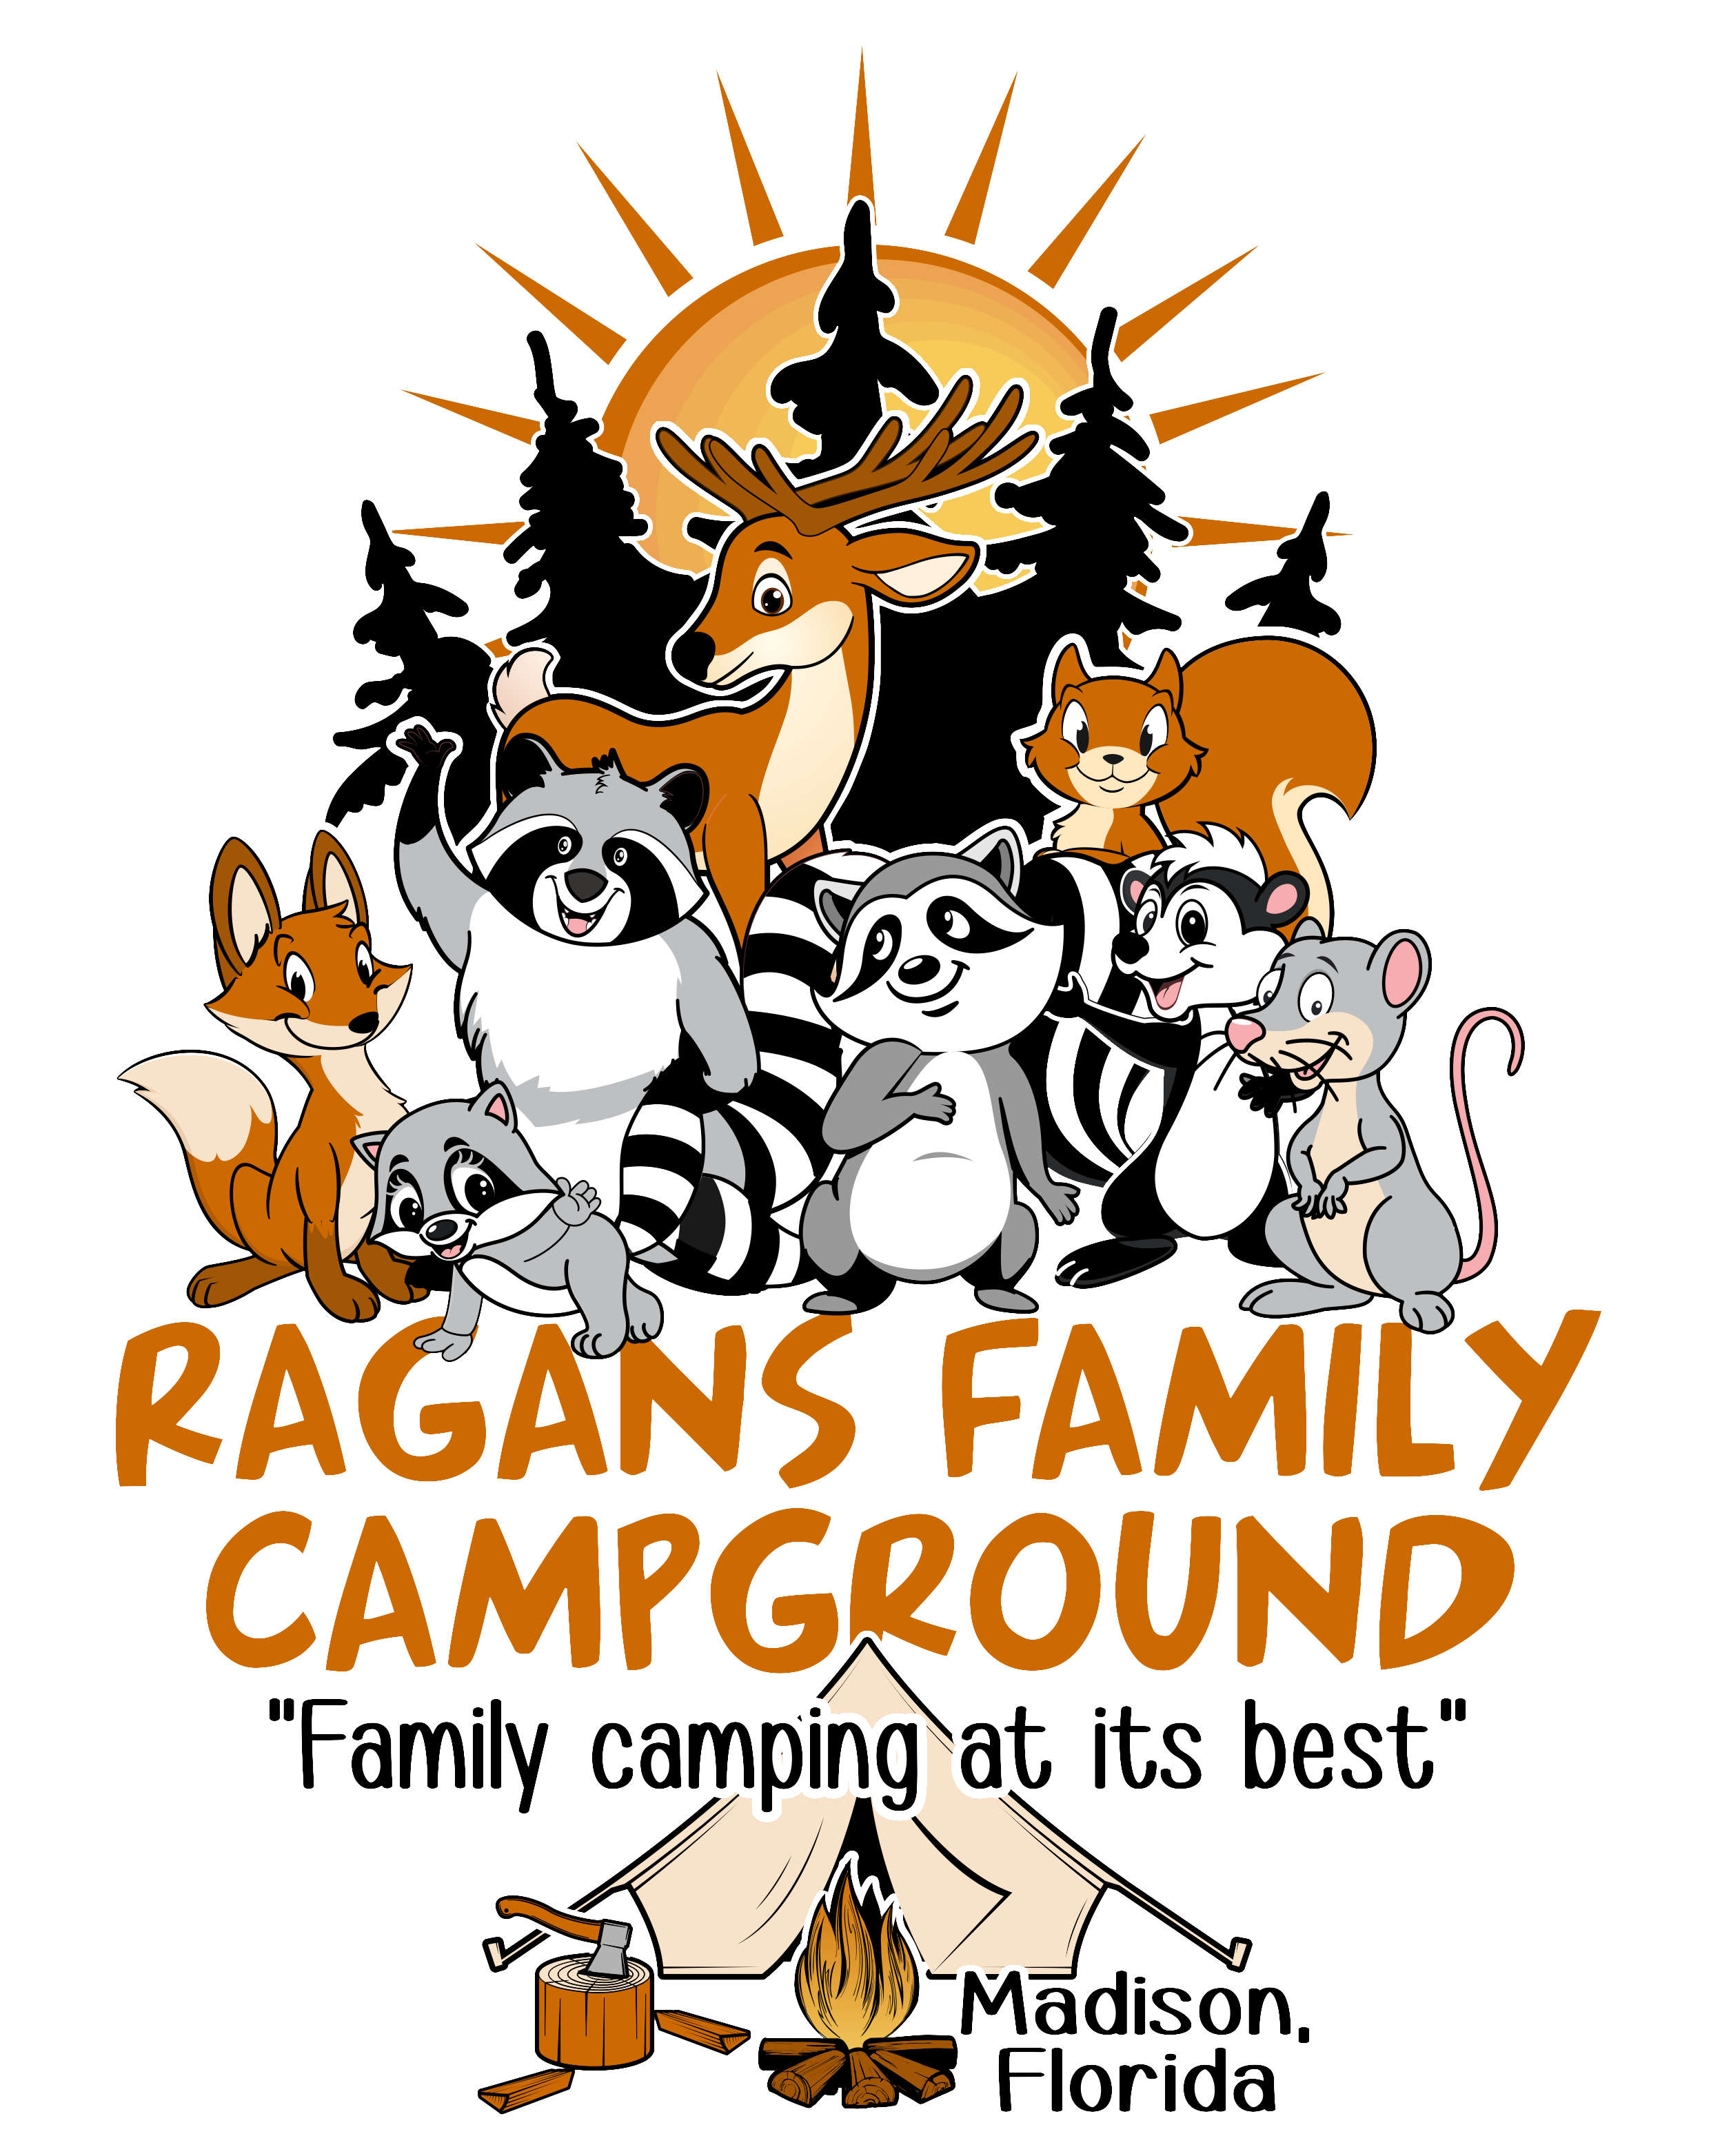 ragans family campground is family camping at its best